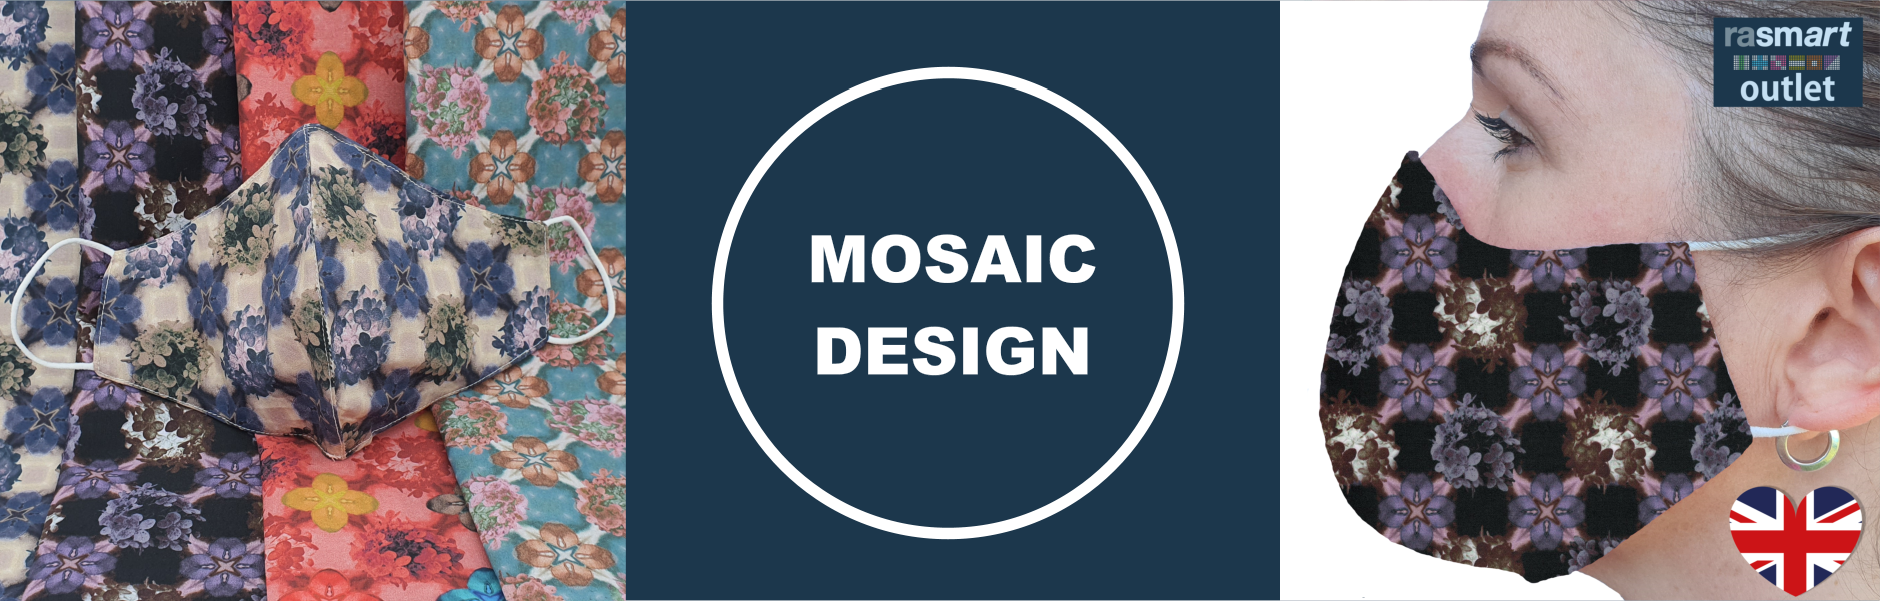 Mosaic Design Face Masks